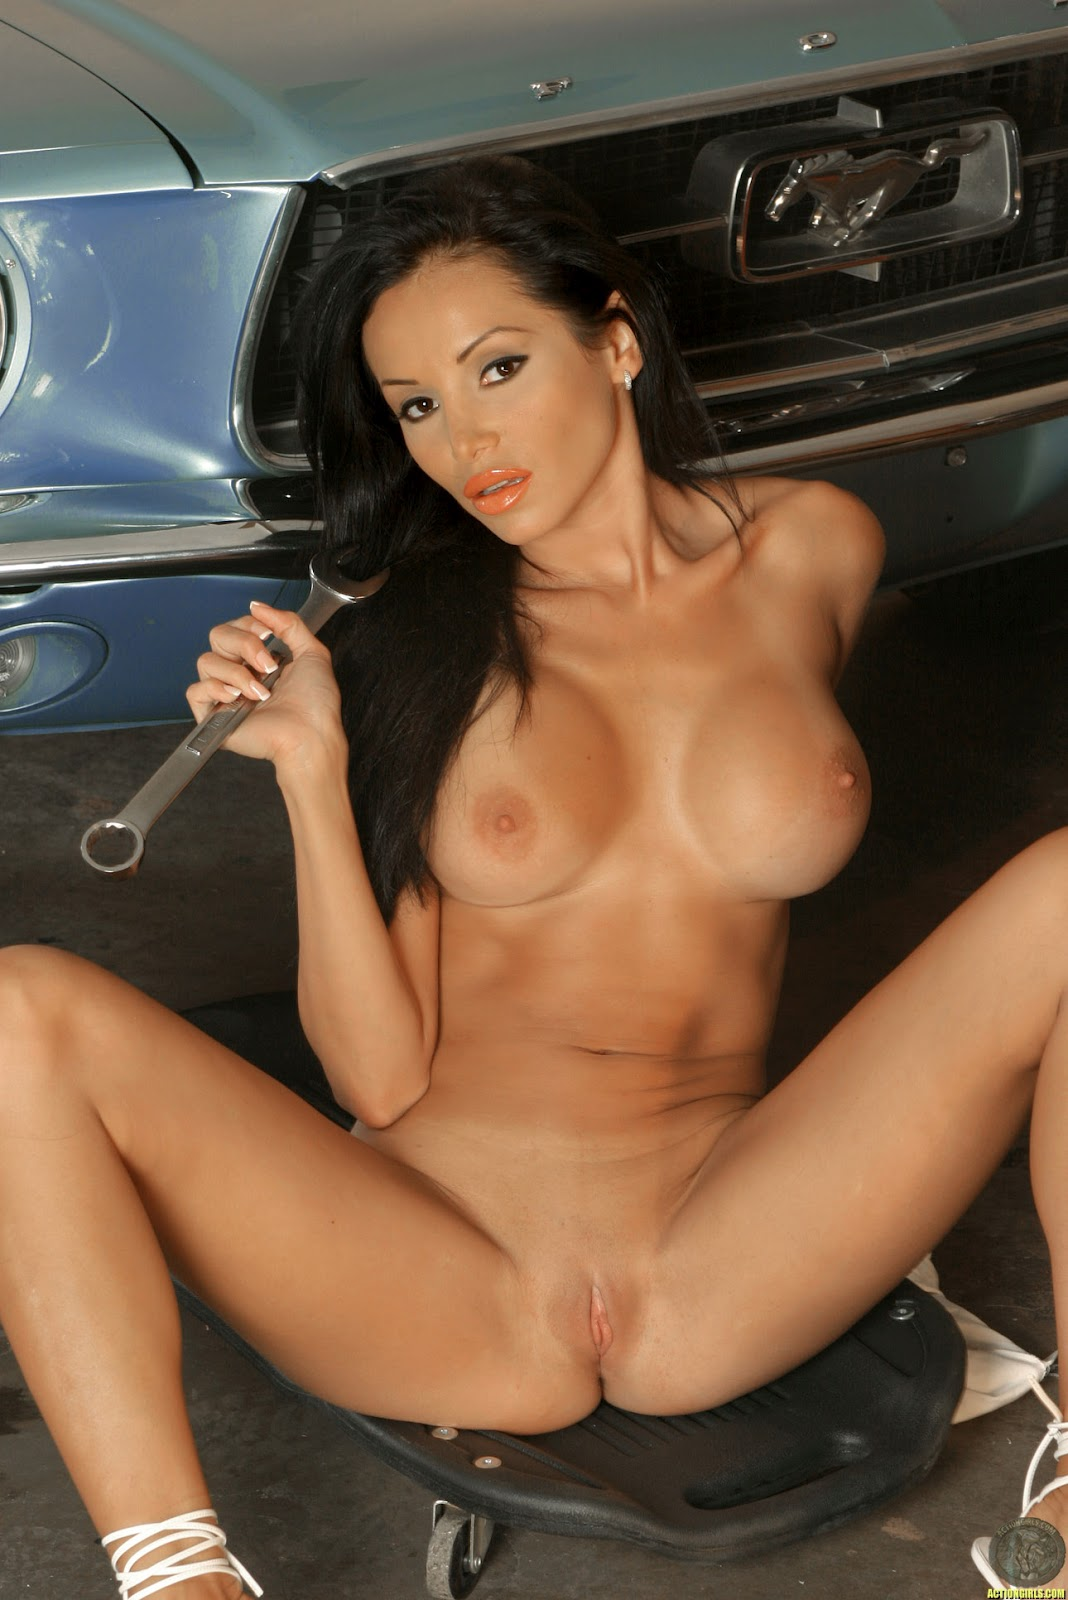 Hot lowrider nude girls this